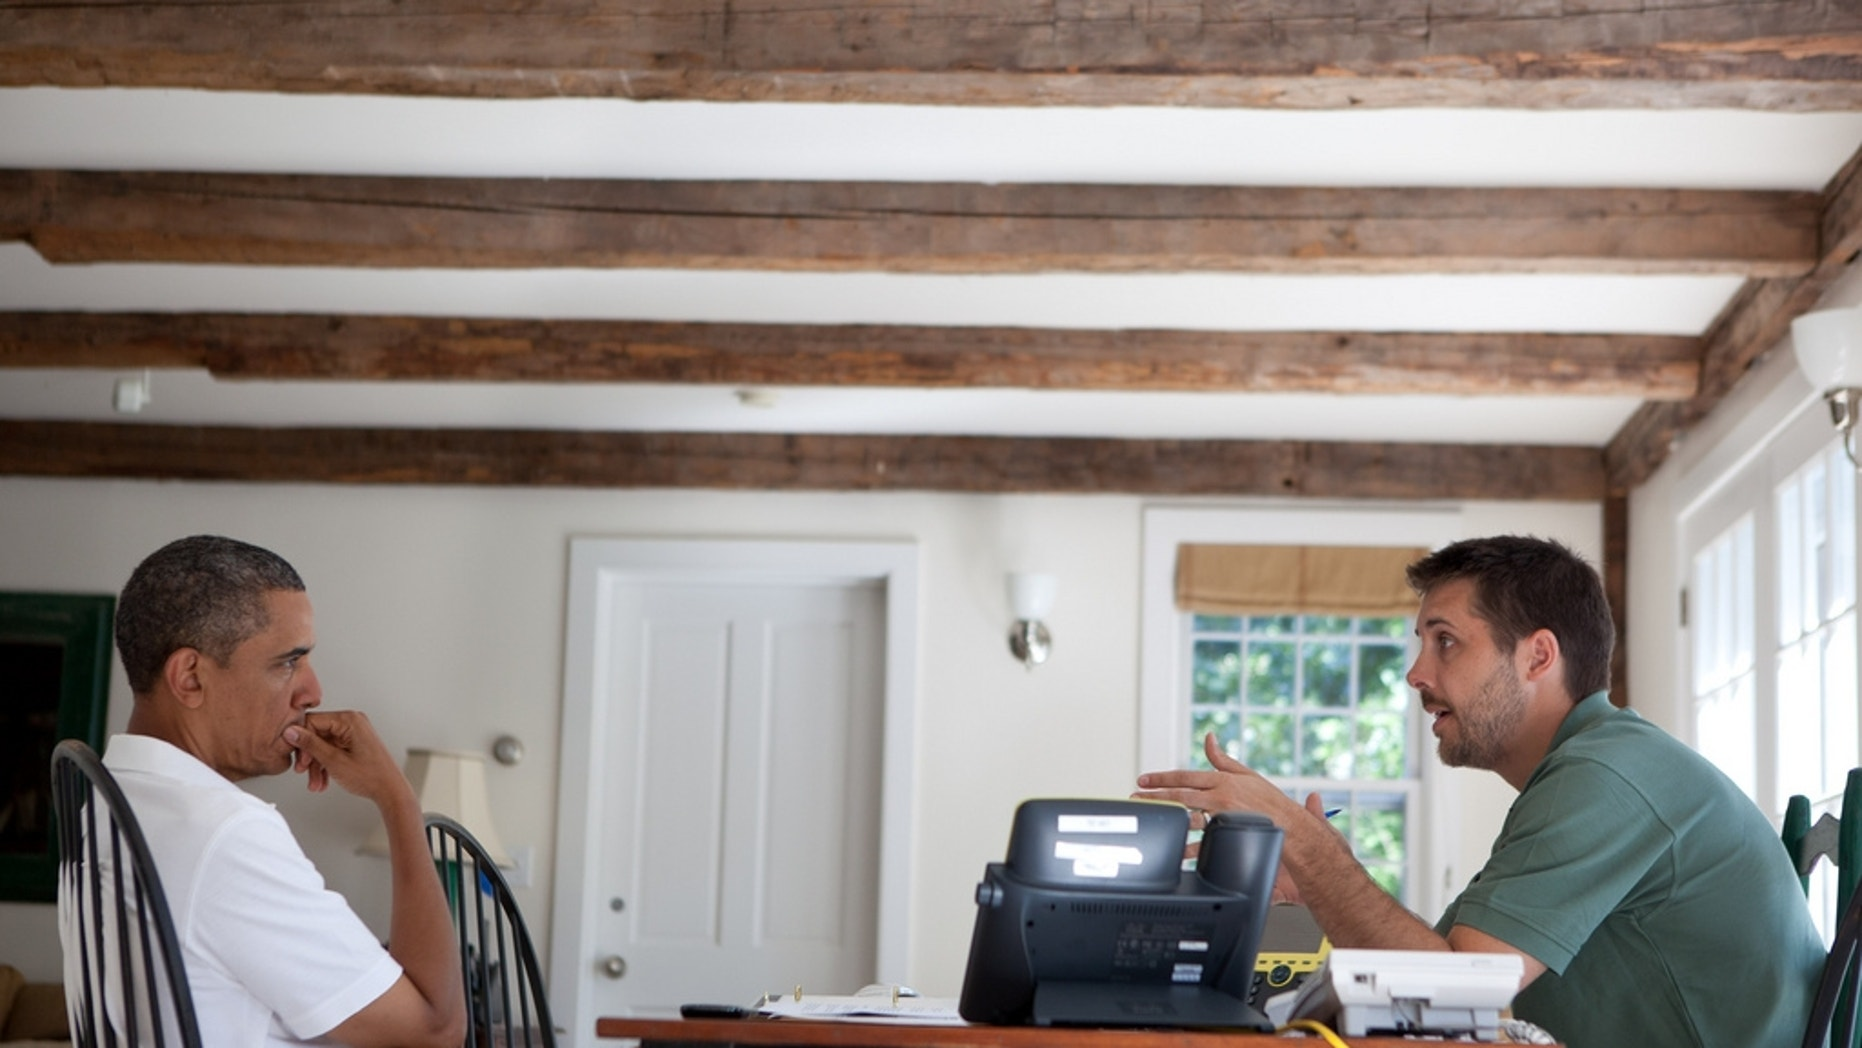 President Obama is briefed by economic adviser Brian Deese on Martha's Vineyard.  (Official White House Photo)